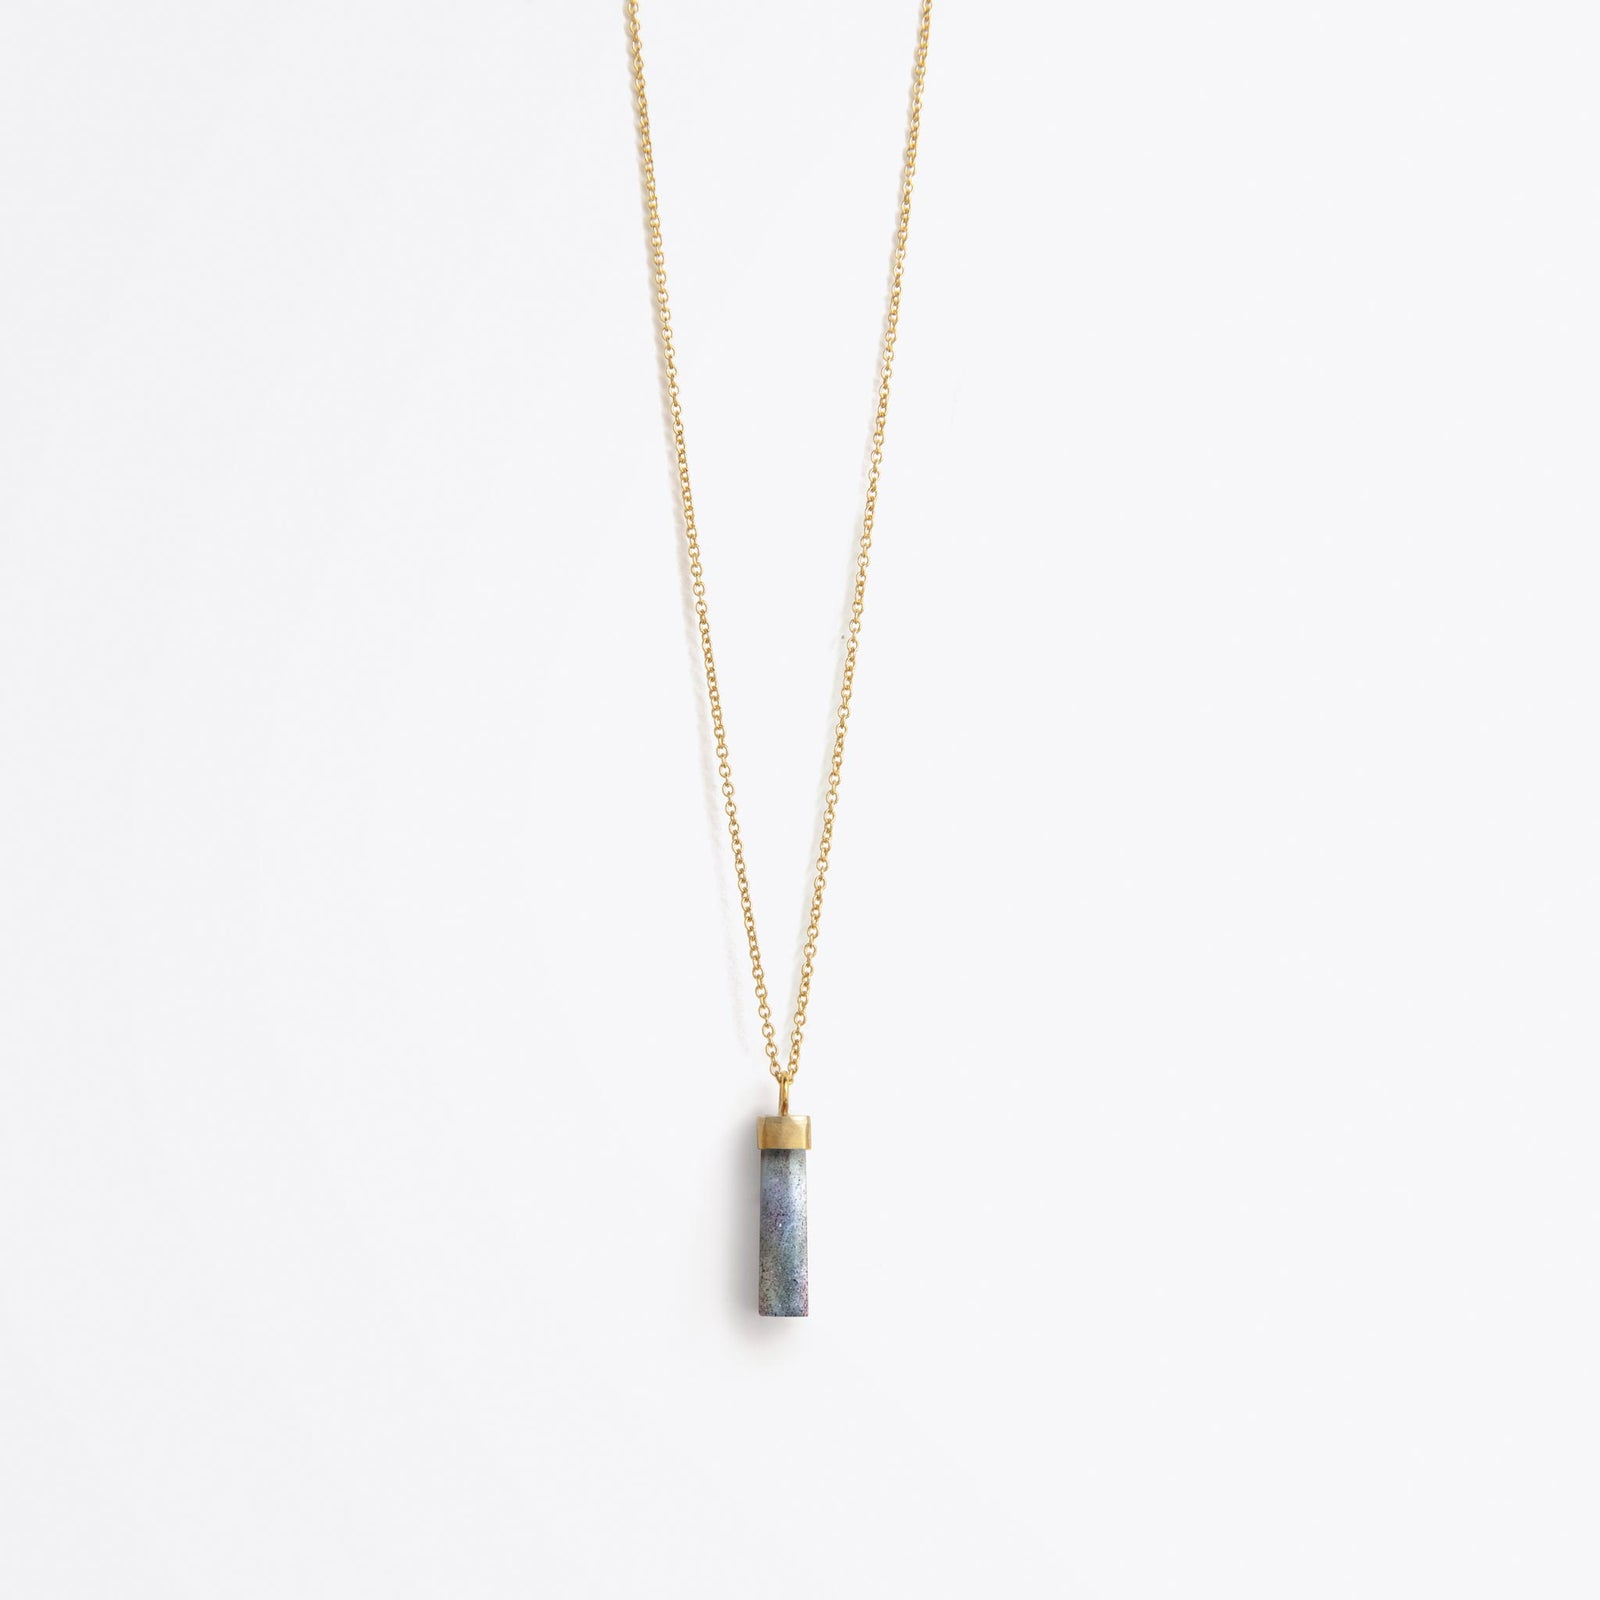 Wanderlust Life Ethically Handmade jewellery made in the UK. Minimalist gold and fine cord jewellery. talisman fine gold chain necklace, iridescent labradorite